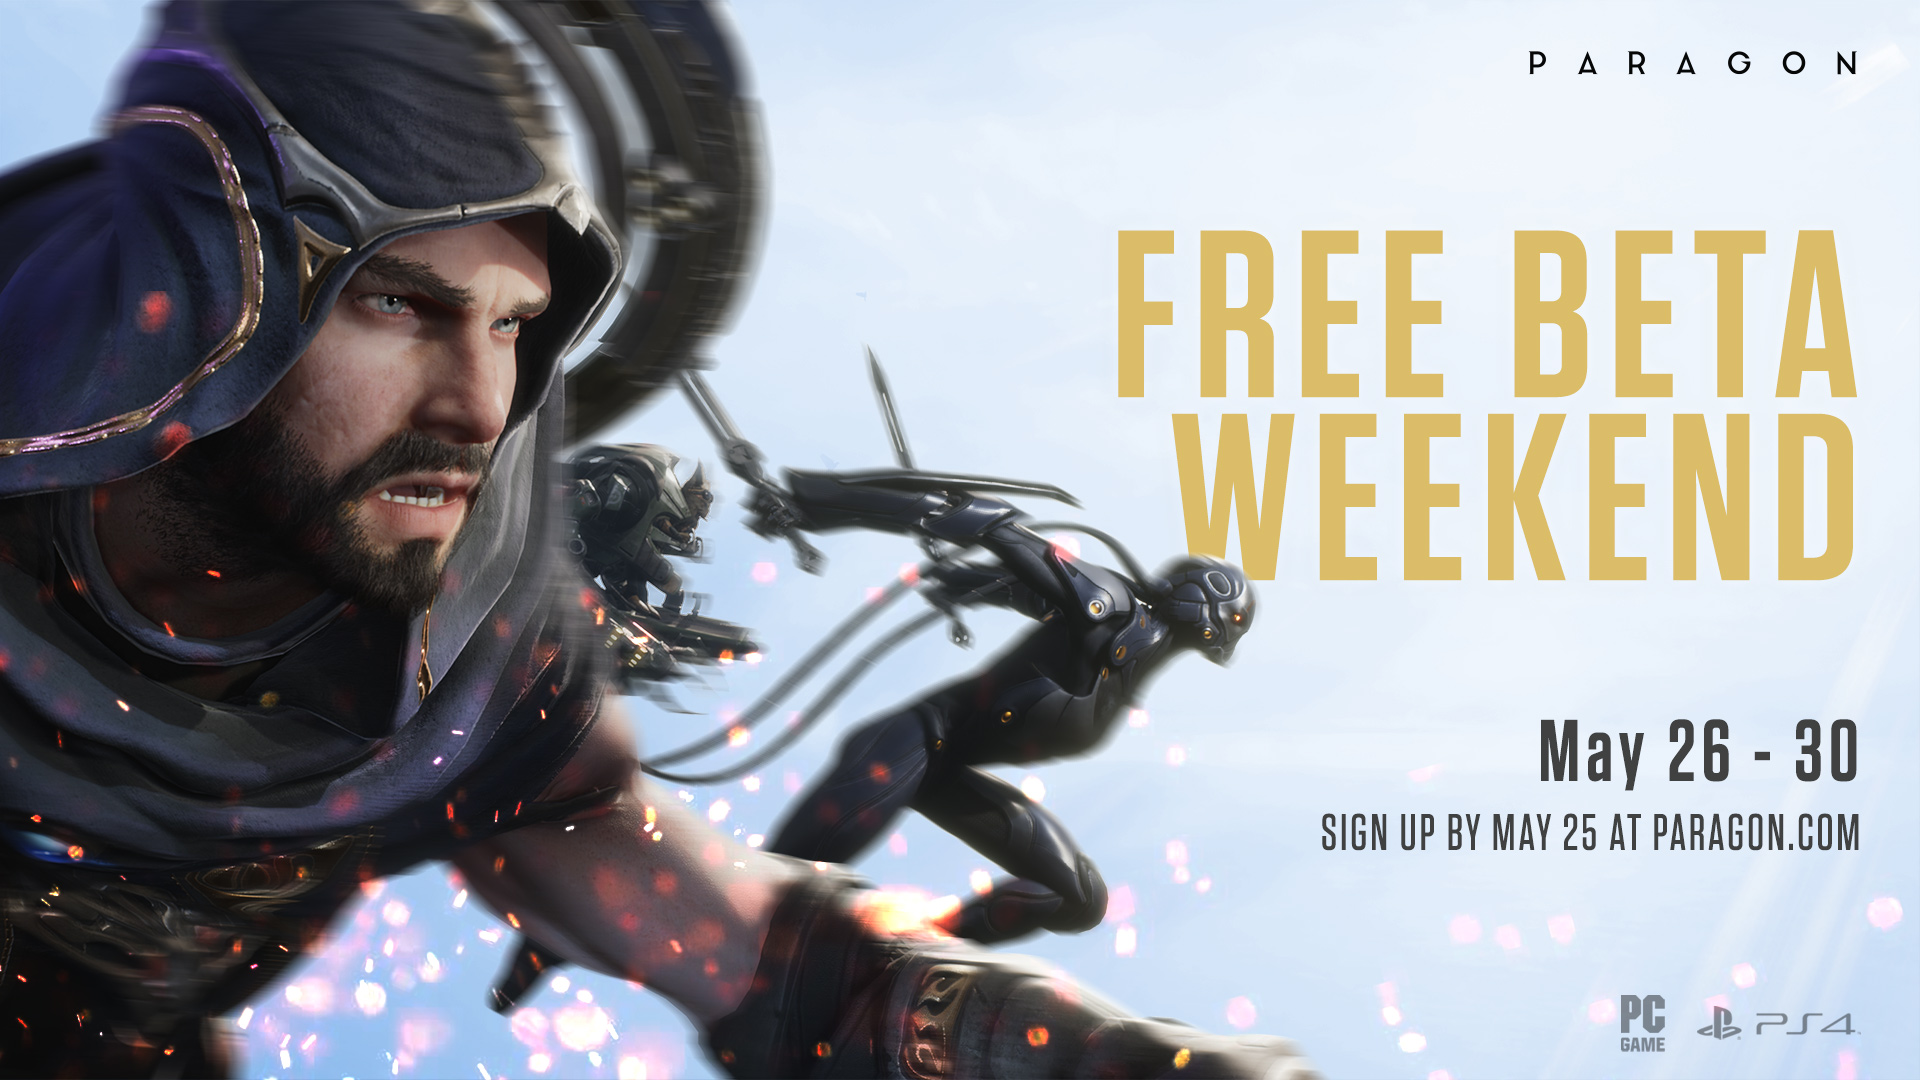 Paragon will have a free Open Beta weekend from on May 26-30th